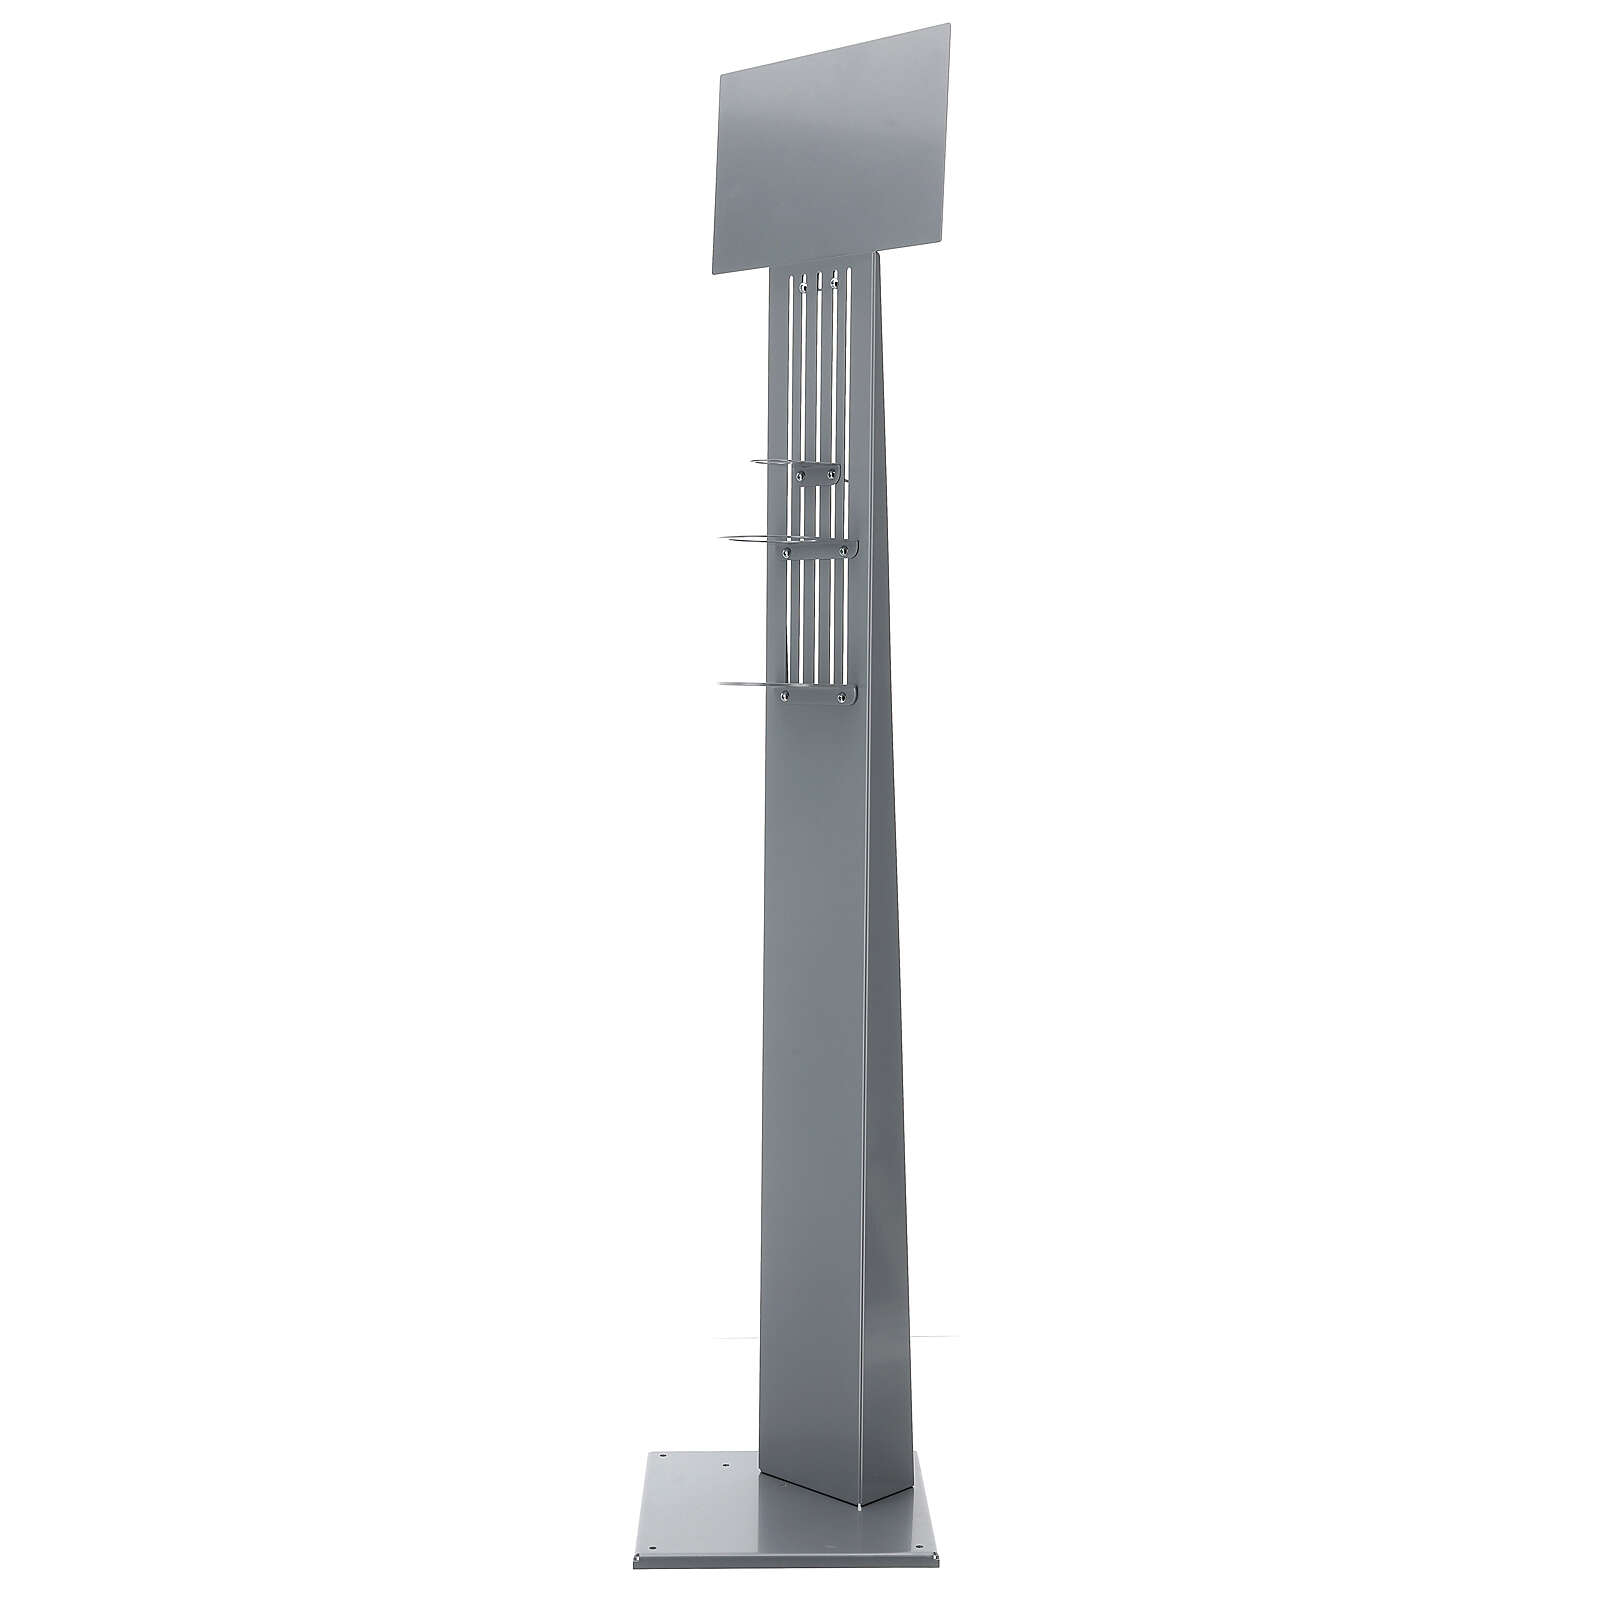 Adjustable hand disinfectant dispenser stand in metal, for outdoor use 3